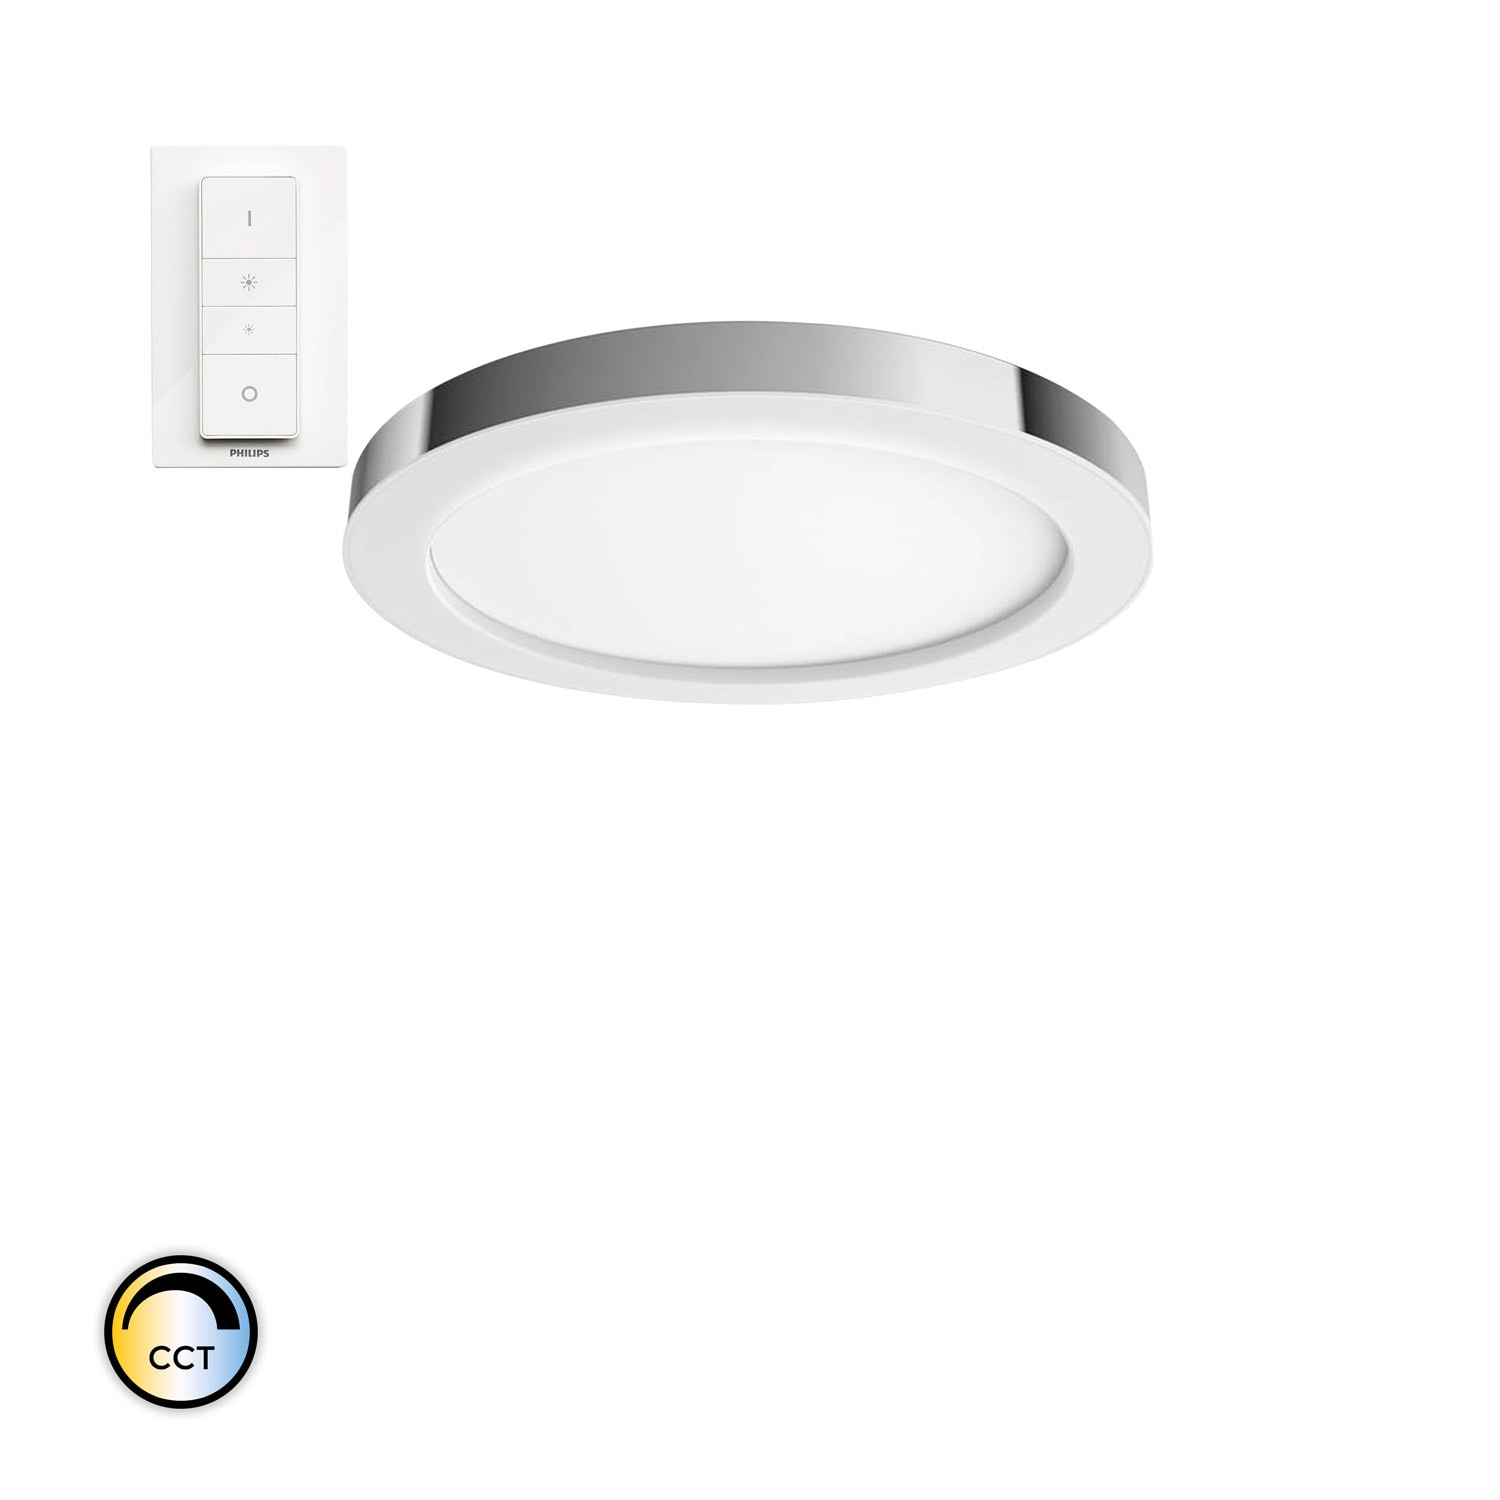 Plafón LED CCT PHILIPS Hue White Ambiance Adore 40W